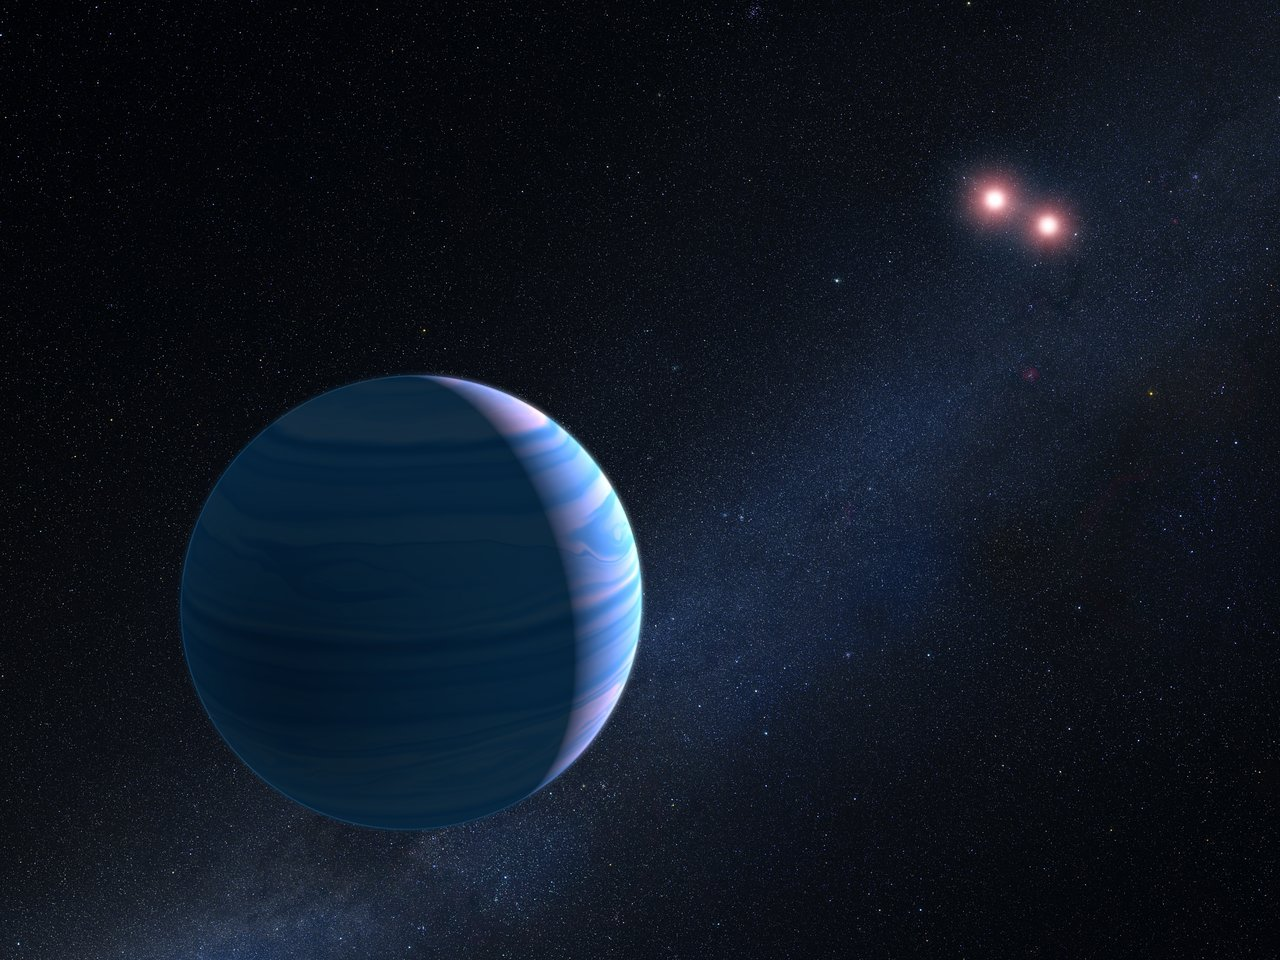 This artist's impression shows a gas giant planet circling the two red dwarf stars in the system OGLE-2007-BLG-349, located 8 000 light-years away. The planet — with a mass similar to Saturn — orbits the two stars at a distance of roughly 480 million kilometres. The two red dwarf stars are a mere 11 million kilometres apart. - Image Credit: NASA, ESA, and G.Bacon (STScl)